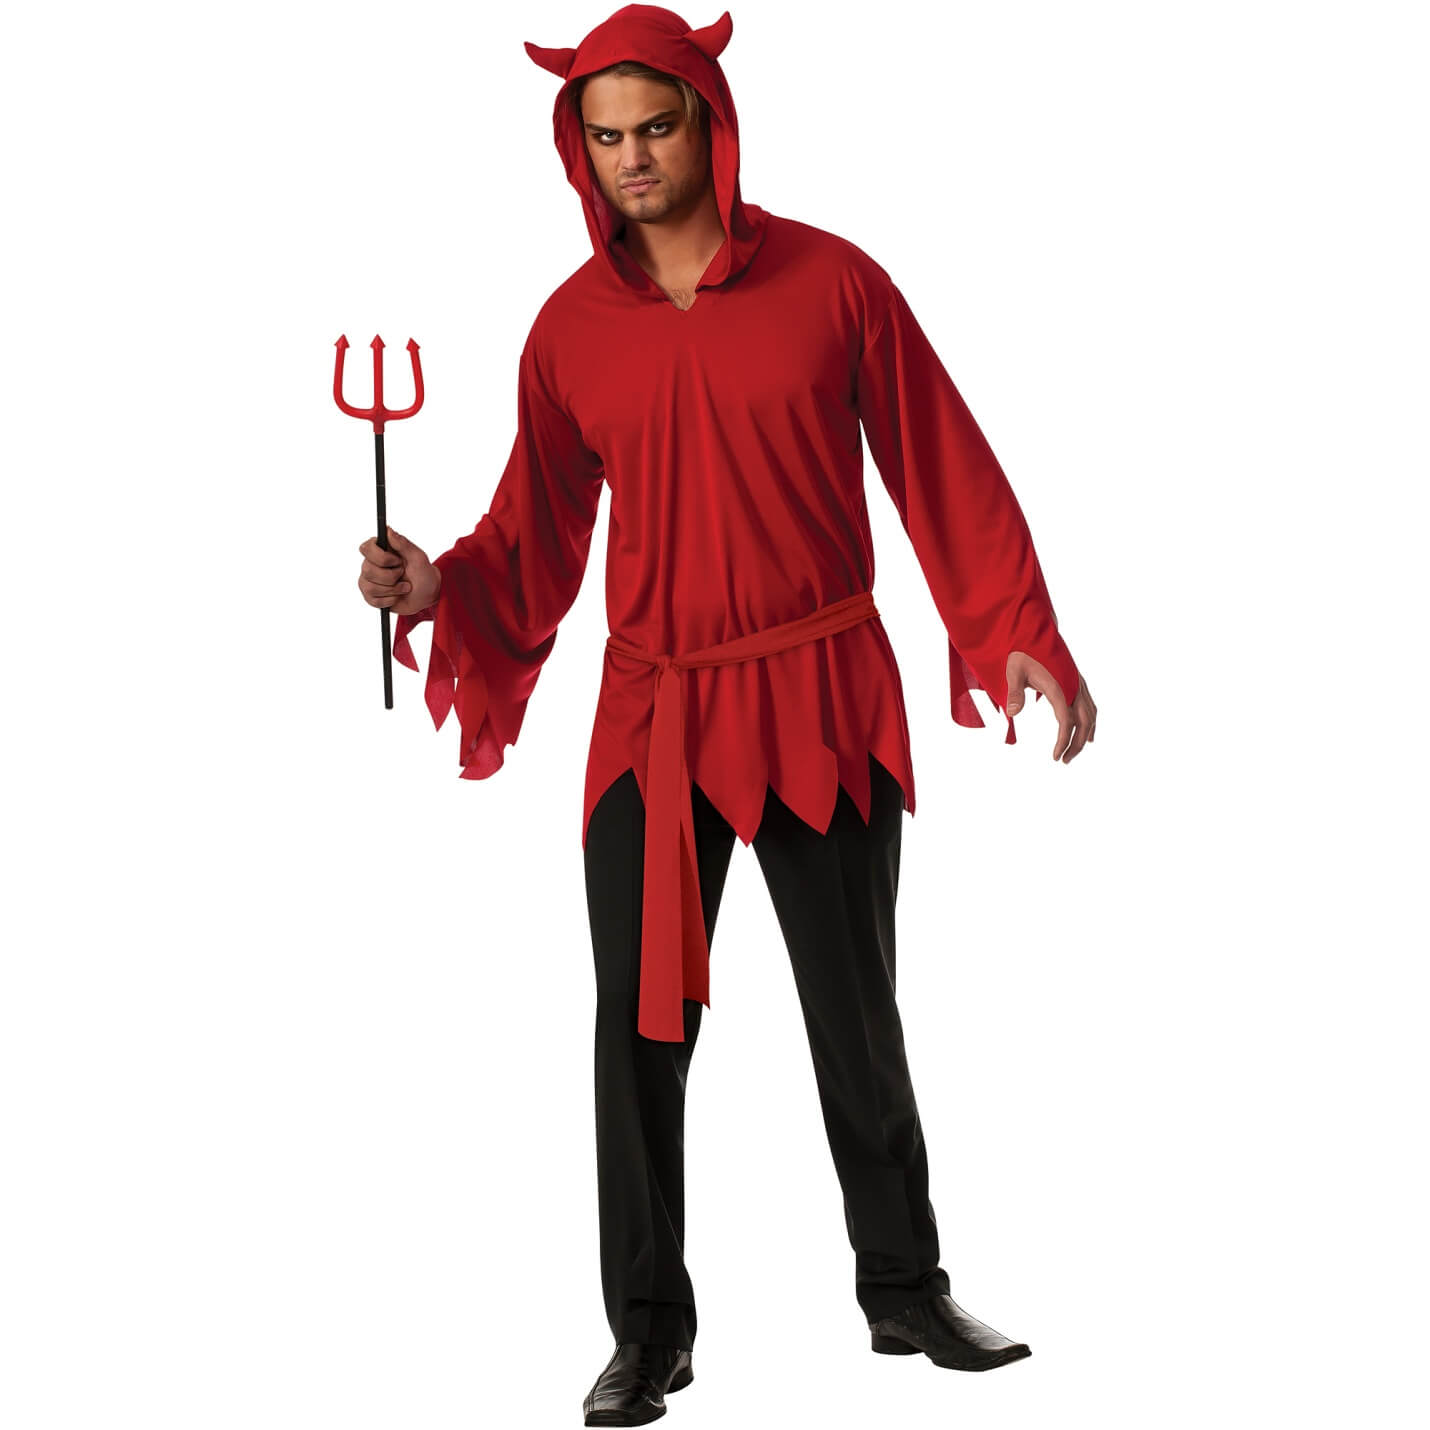 Red Devilicious Hoodie For Halloween